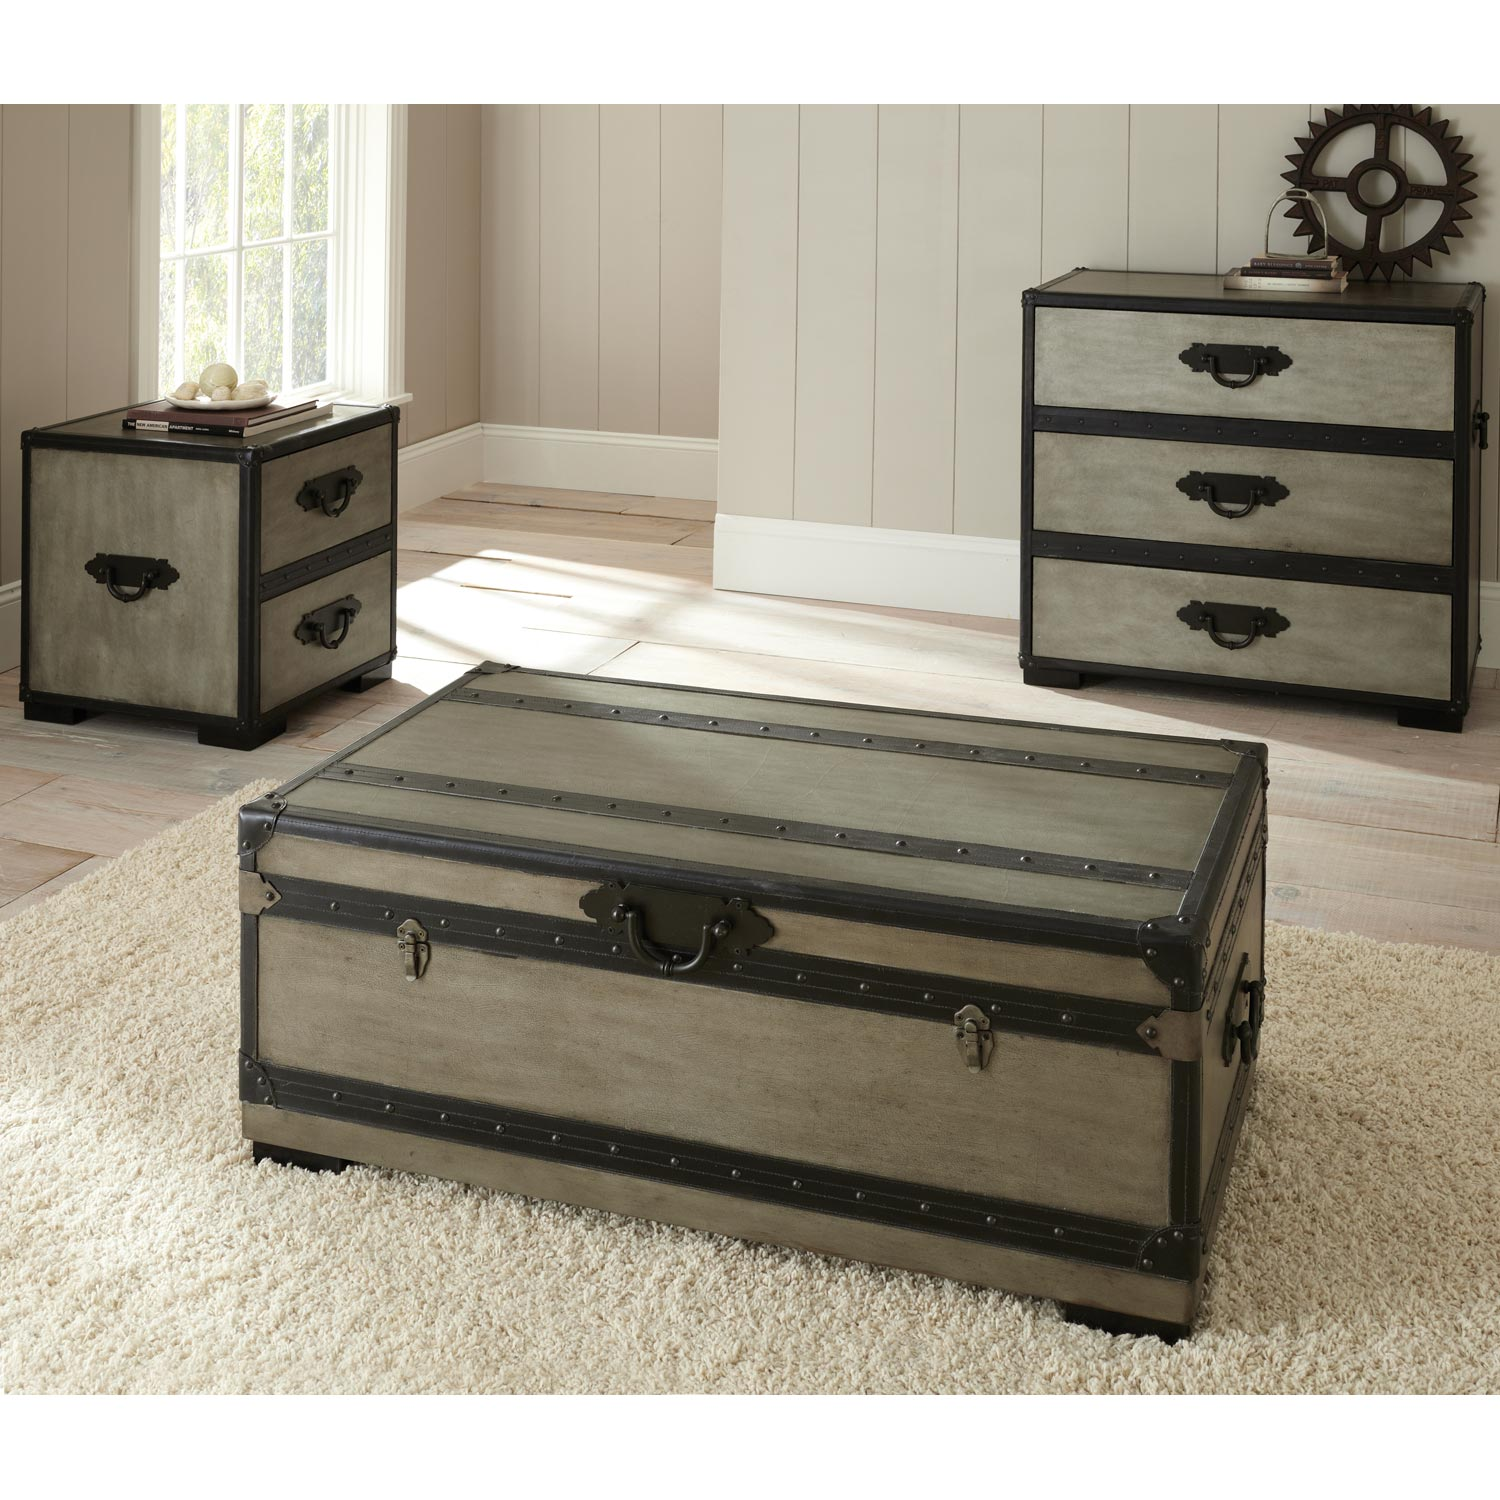 Rowan Storage Trunk Coffee Table Leather Accents Gray DCG